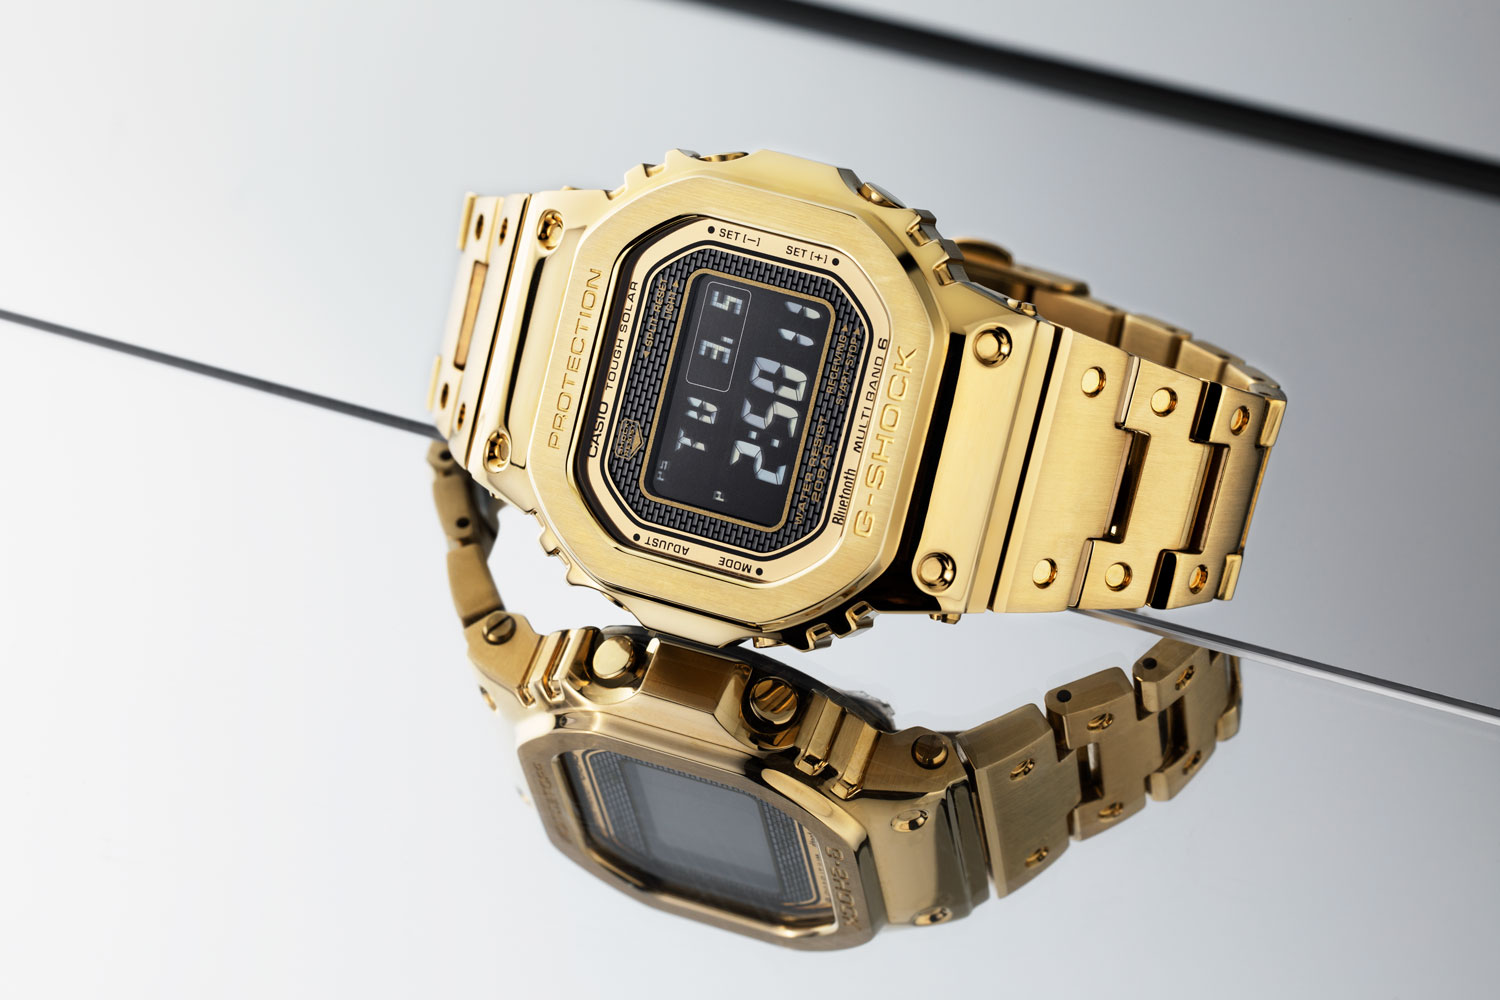 The IP coated gold G-Shock Full Metal 5000 (Image © Revolution)